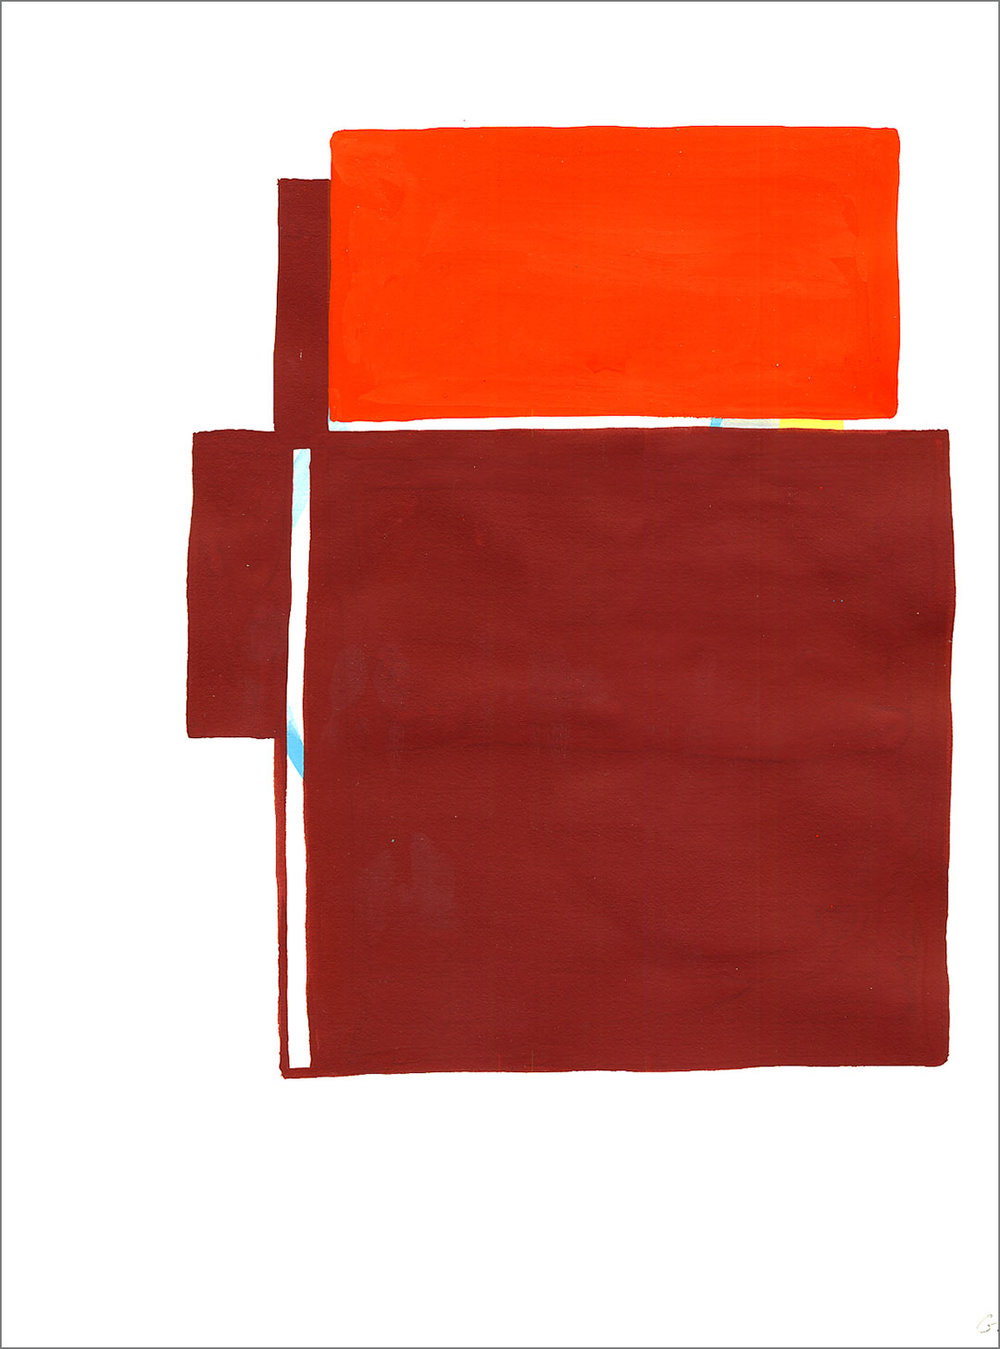 "Fort 9, 2005, W9"" x H12"", gouache on paper."